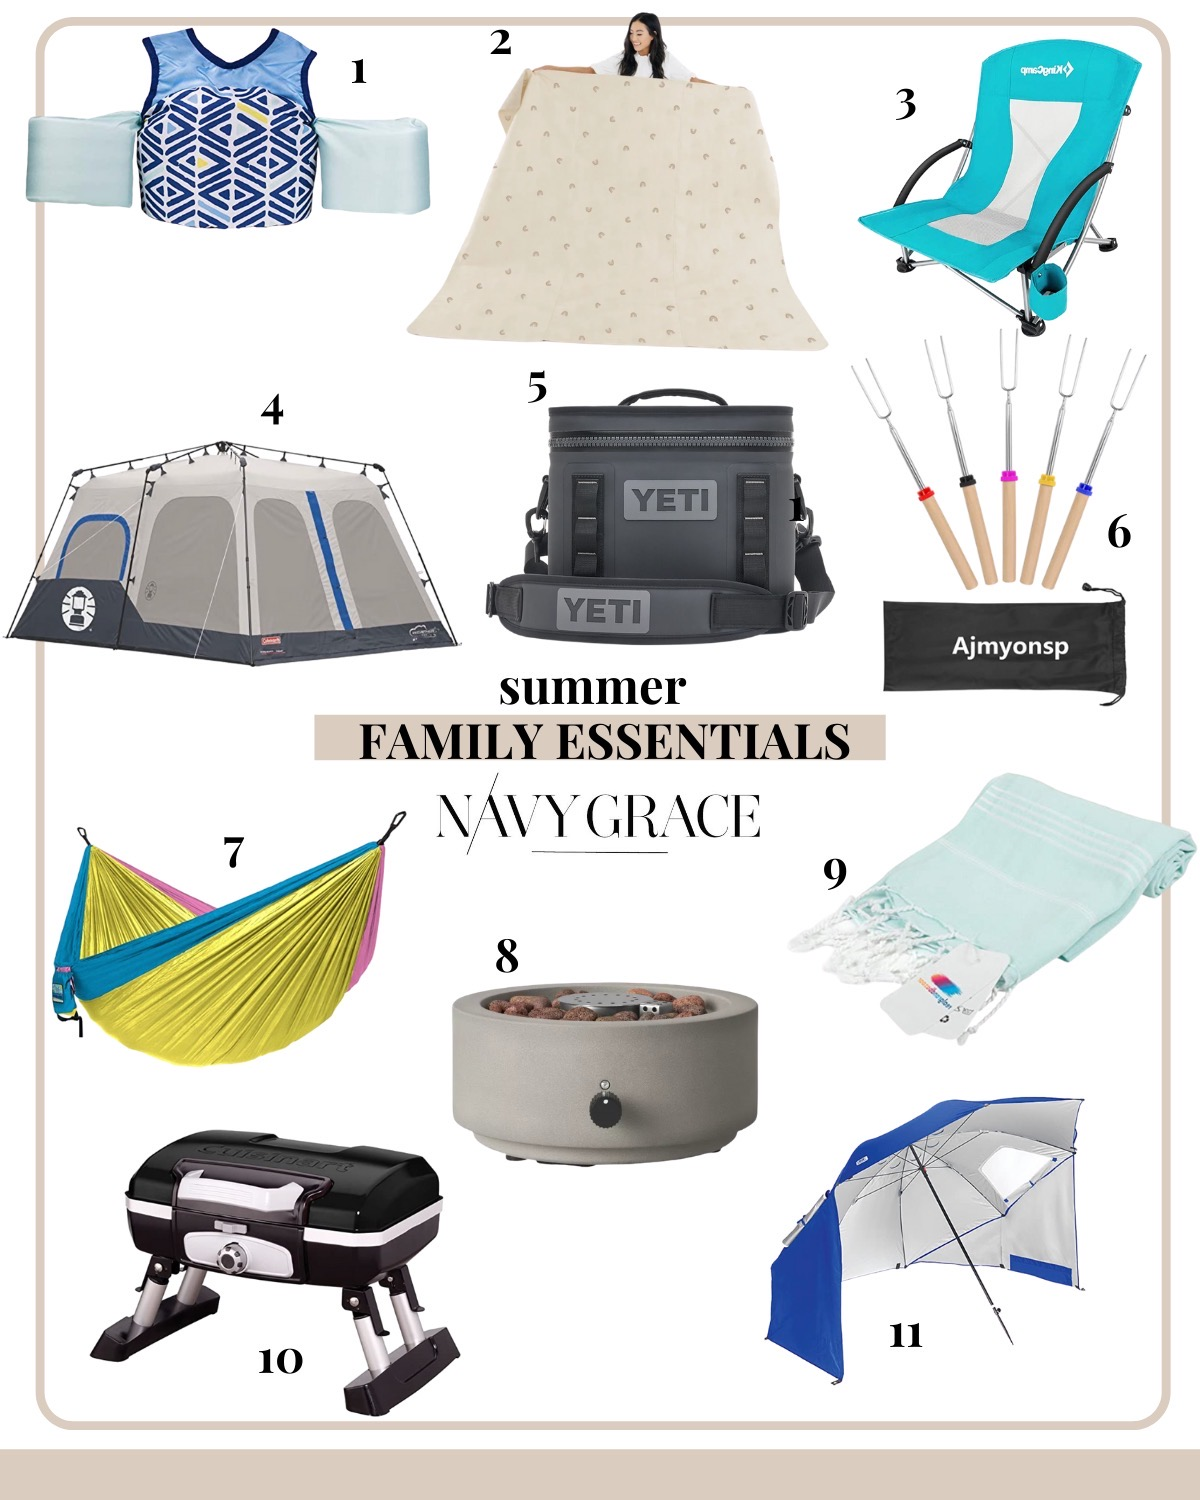 Outdoor Essentials by popular San Diego lifestyle blog, Navy Grace: collage image of a Little Fin Swimmer float vest, Maxi Gathre Mat, Low Sling beach chair, 8 person Coleman tent, Yeti cooler, roasting sticks, Turkish beach towel, portable tabletop grill, Sun and Rain canopy umbrella, Veer Gear wagon, and a tabletop fire pit.